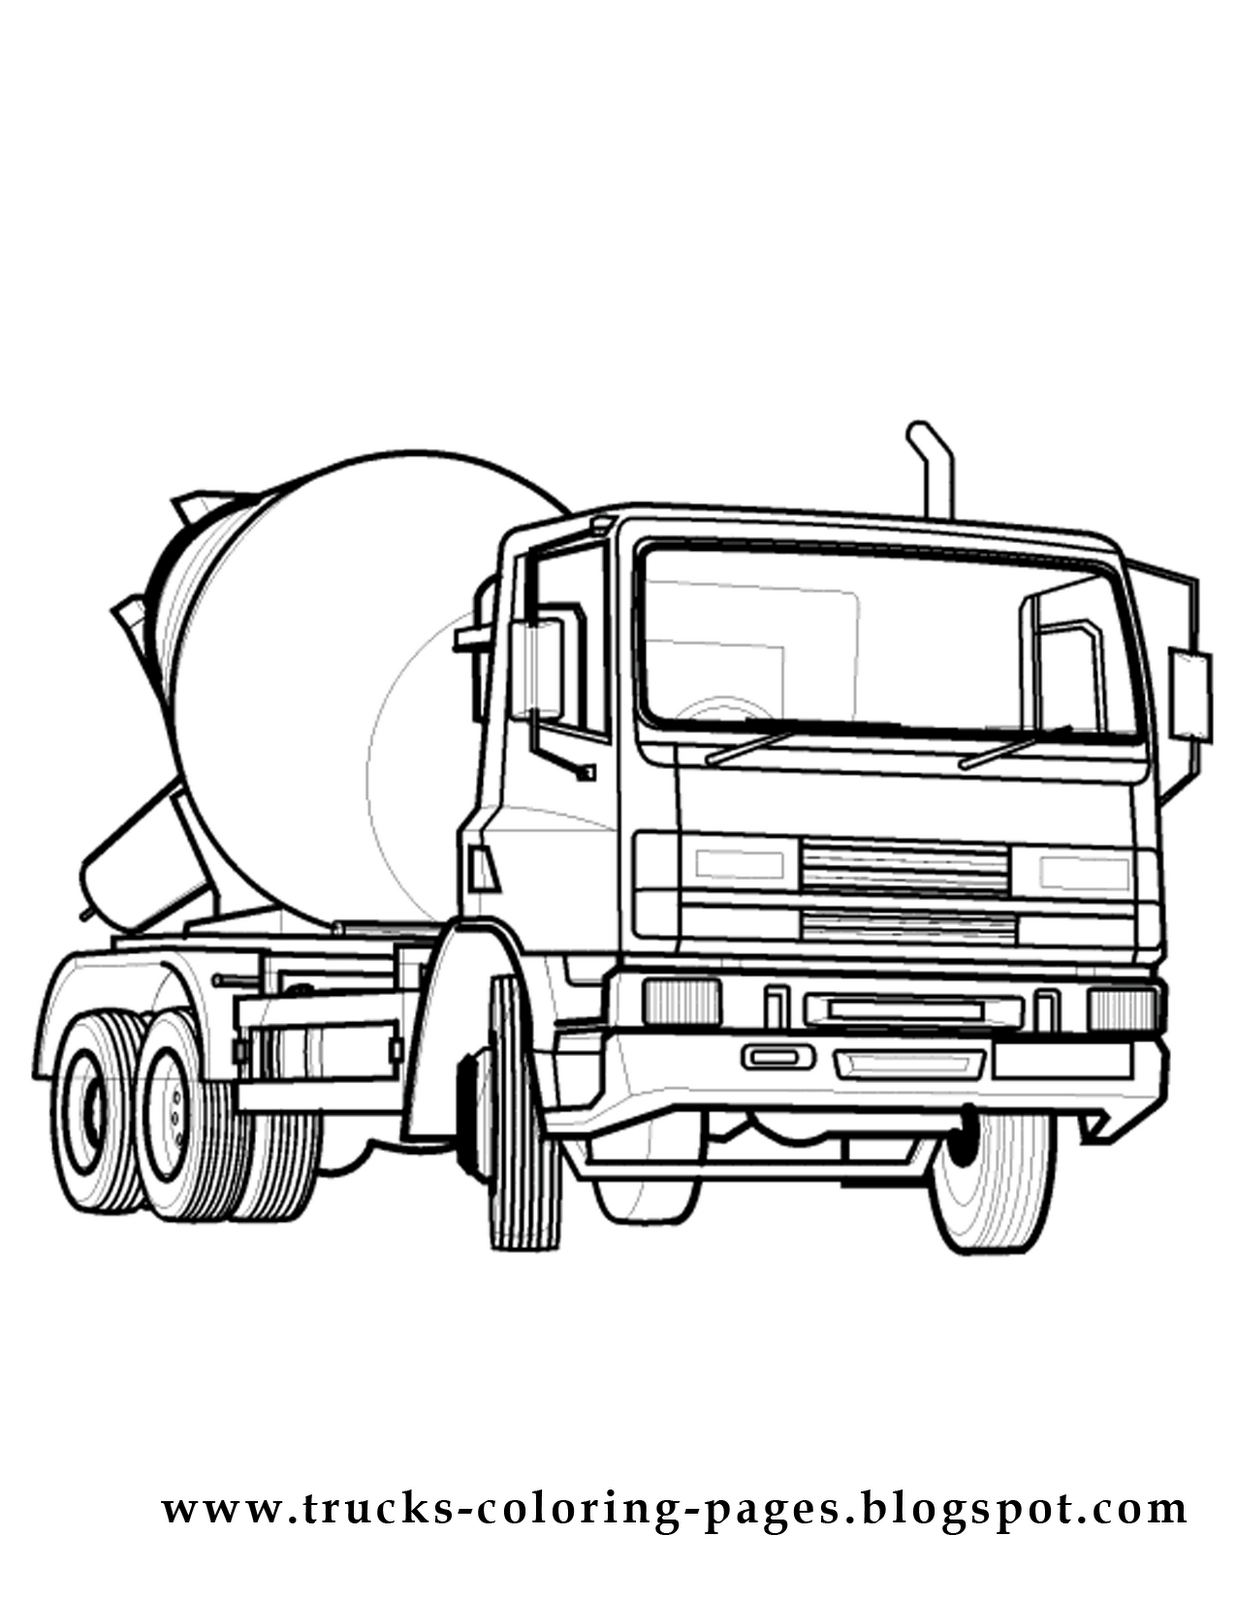 Truck Coloring Pages To Print 12 Image